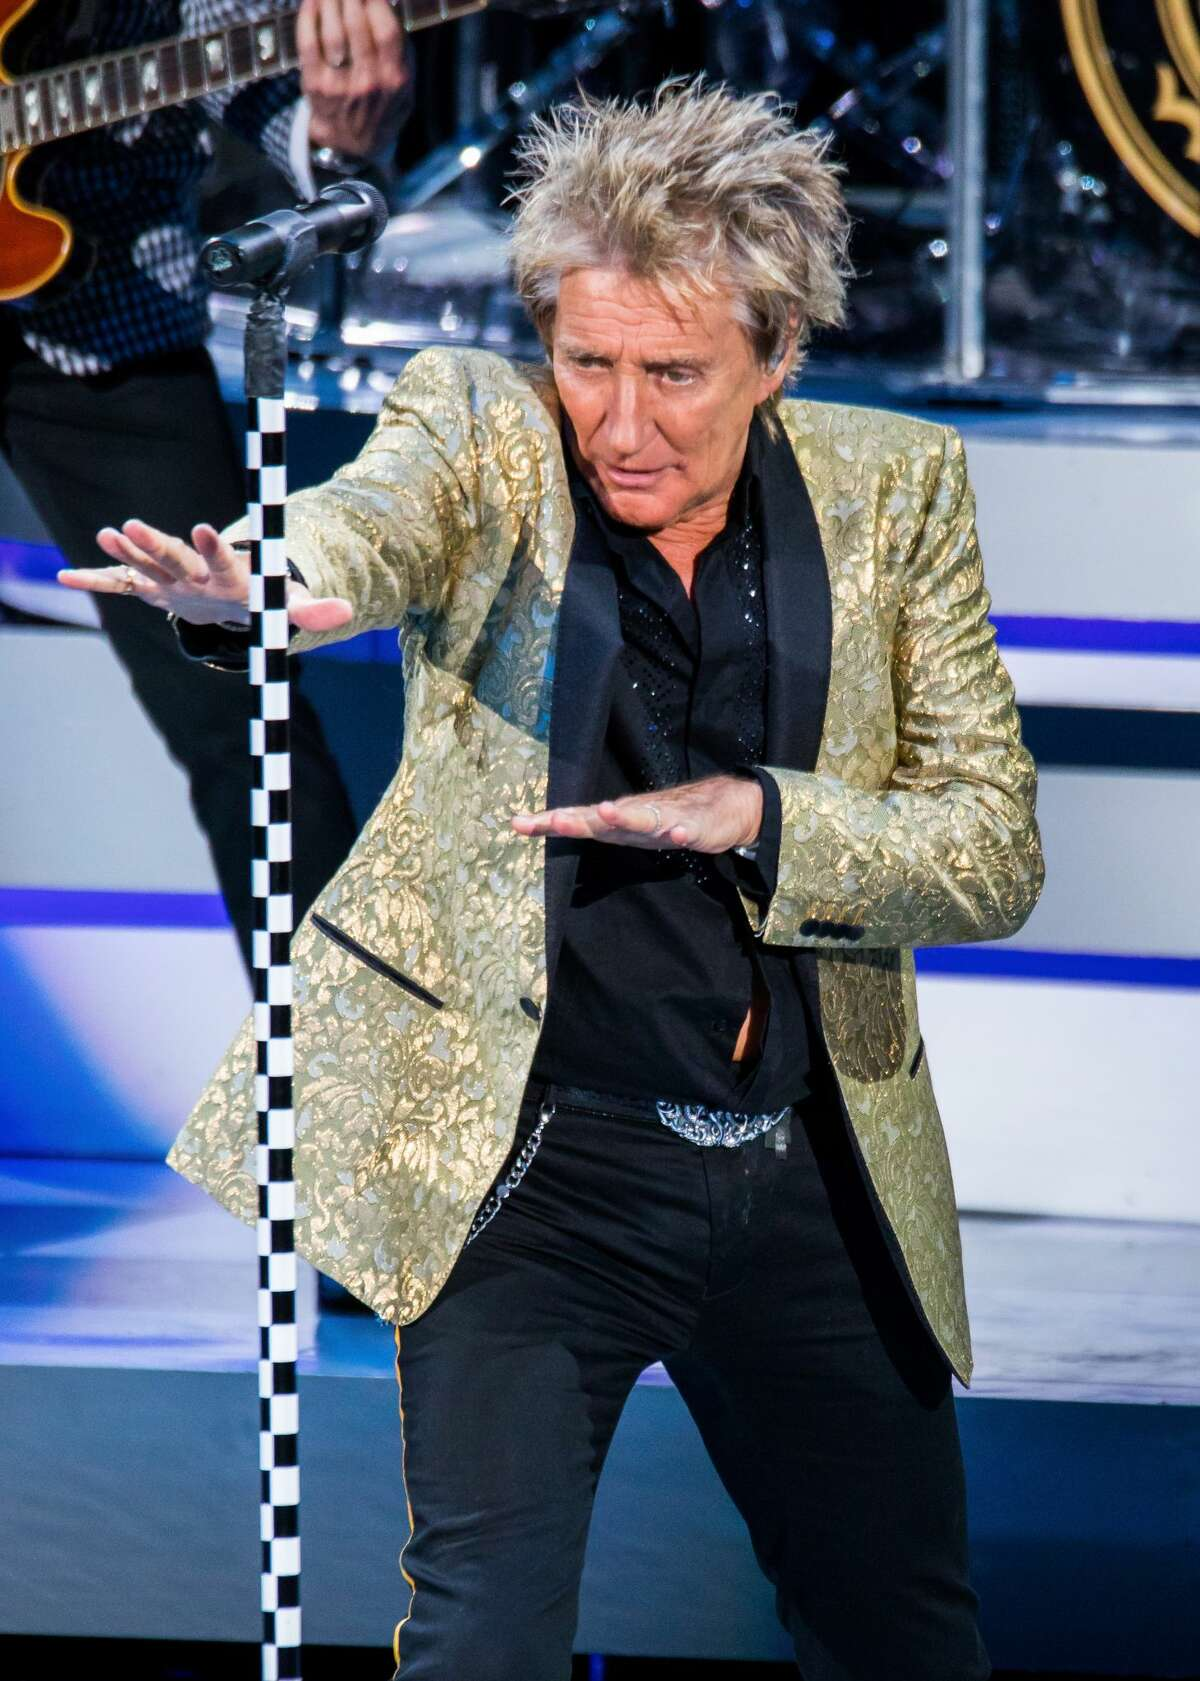 """Rod Stewart:The """"Forever Young"""" singer will be performing at the Smart Financial Centre on Saturday, Aug. 12 at 7:30 p.m. More Details: www.smartfinancialcentre.net"""